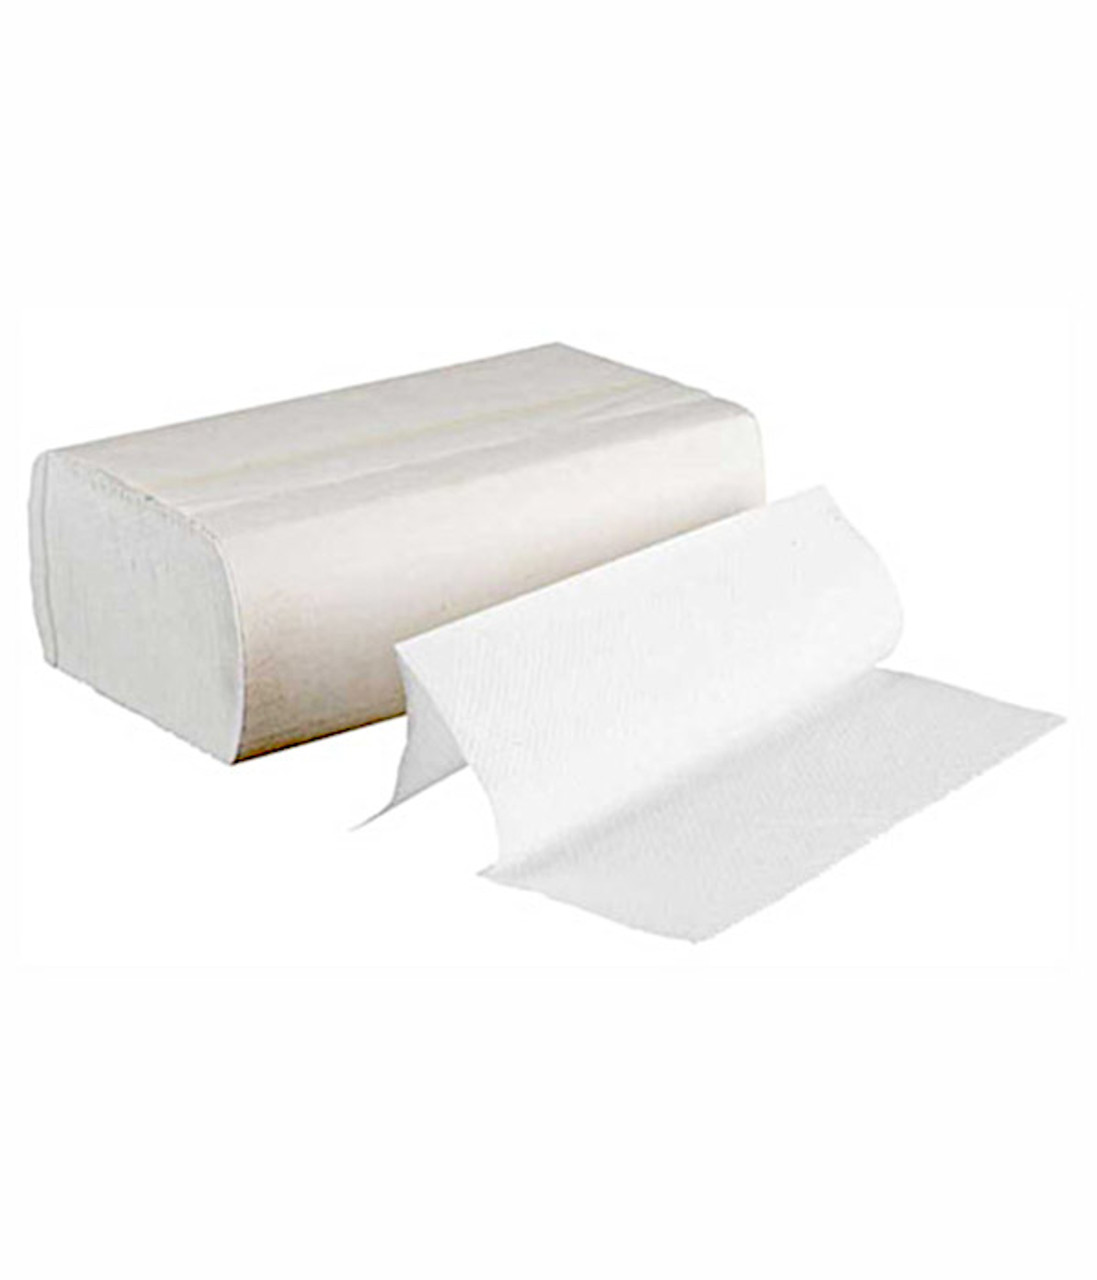 Value Priced Multi Fold Paper Towels in White